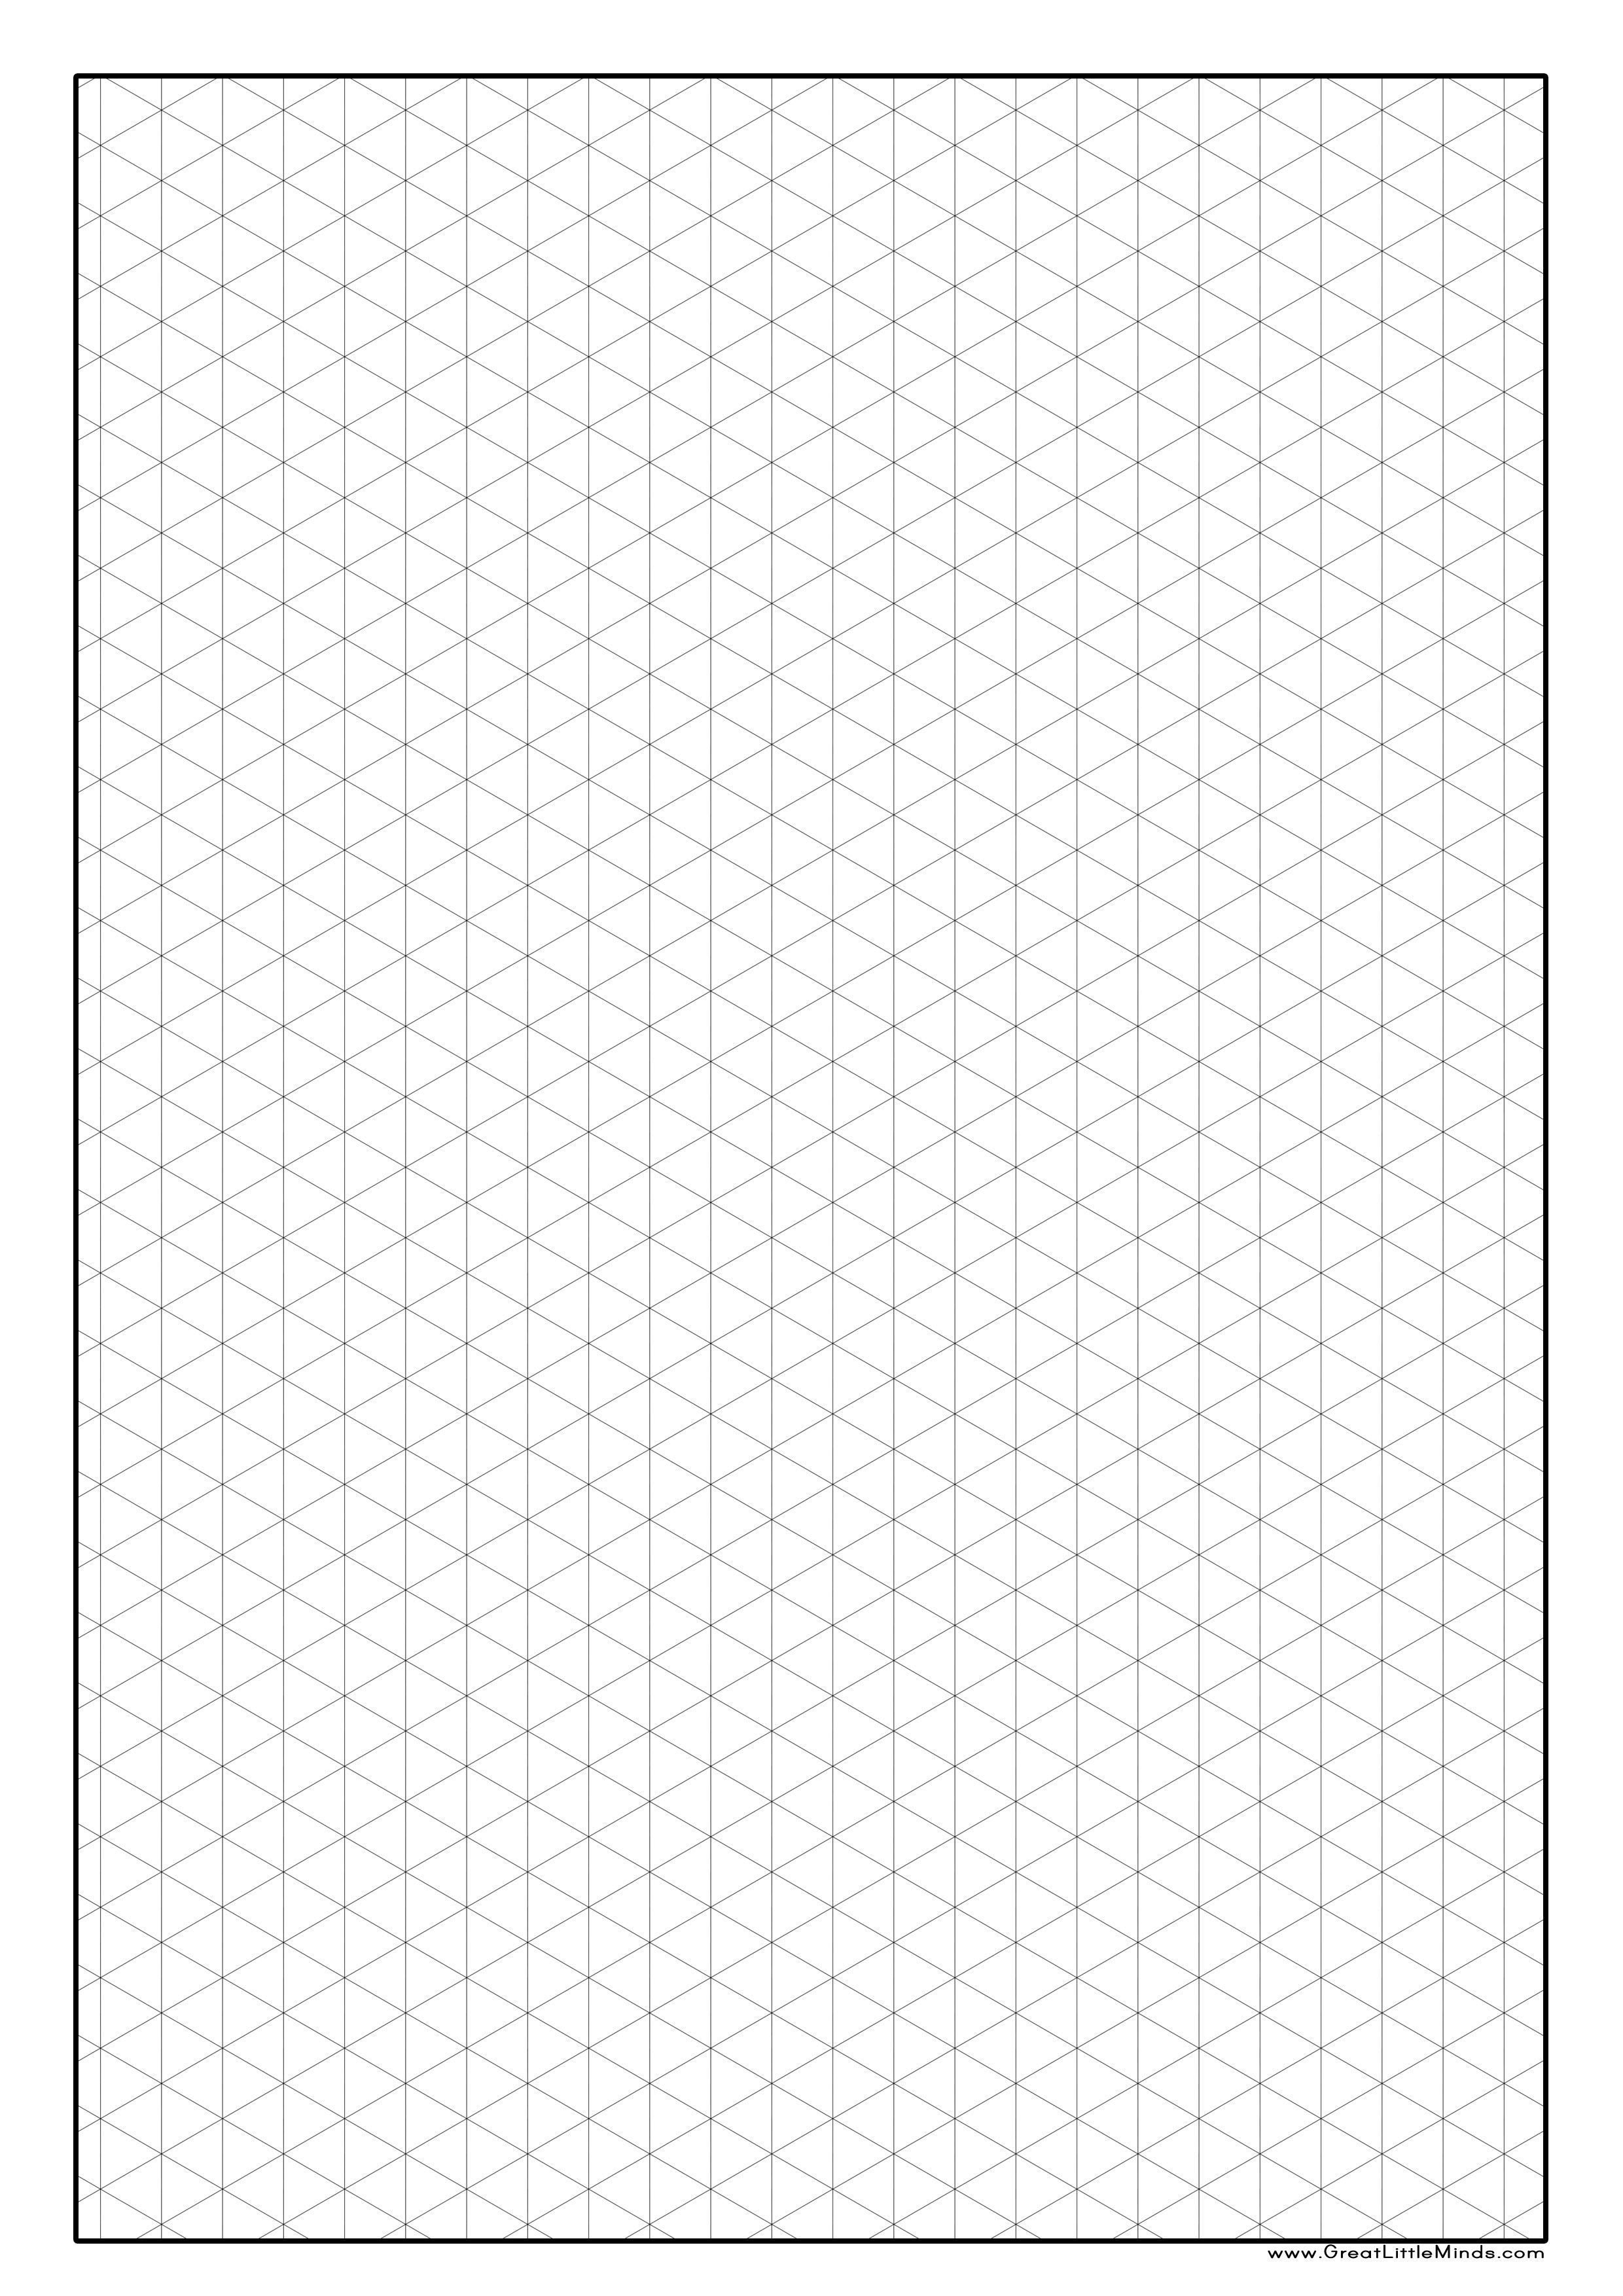 Pretty 1 Circle Template Thick 1 Year Experience Resume Format For Net Developer Flat 10 Best Resume Services 10 Envelope Window Template Youthful 10 Off Coupon Template White10 Tips For A Great Resume Printable 3d Graph Paper \u2013 Printable Editable Blank Calendar 2017